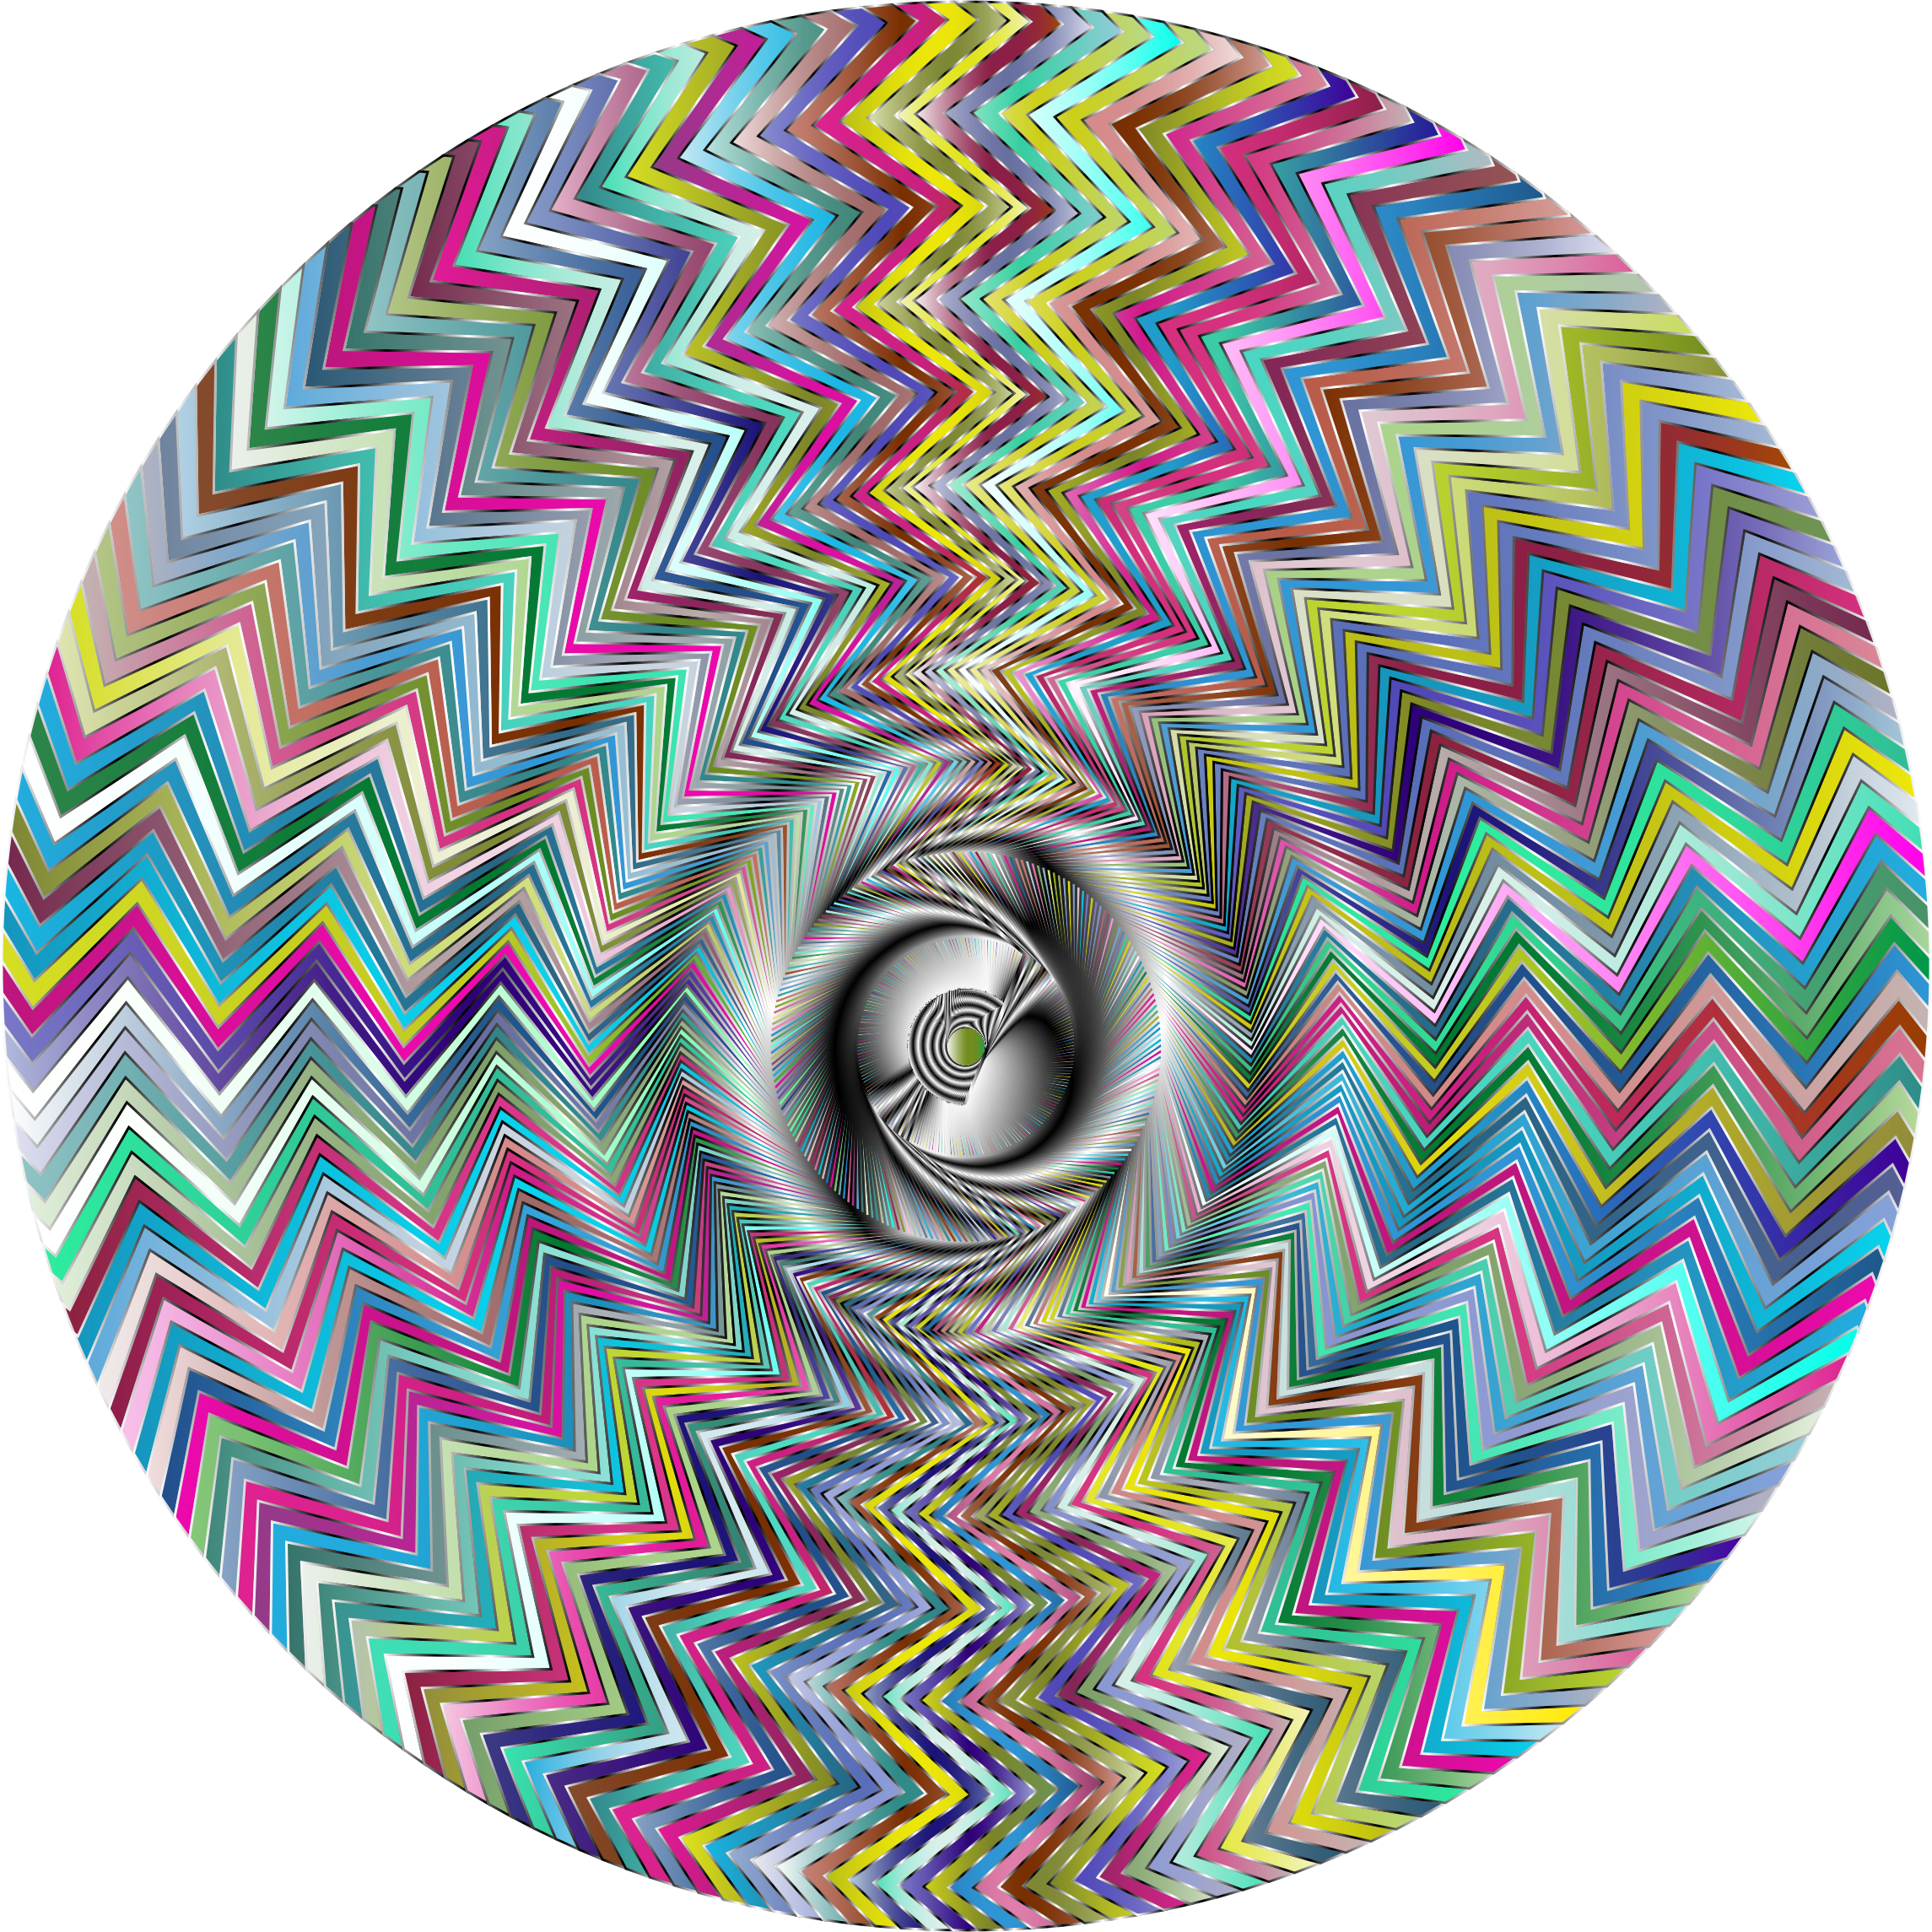 Fraser Spiral Illusion Derivative 5 Variation 2 by GDJ